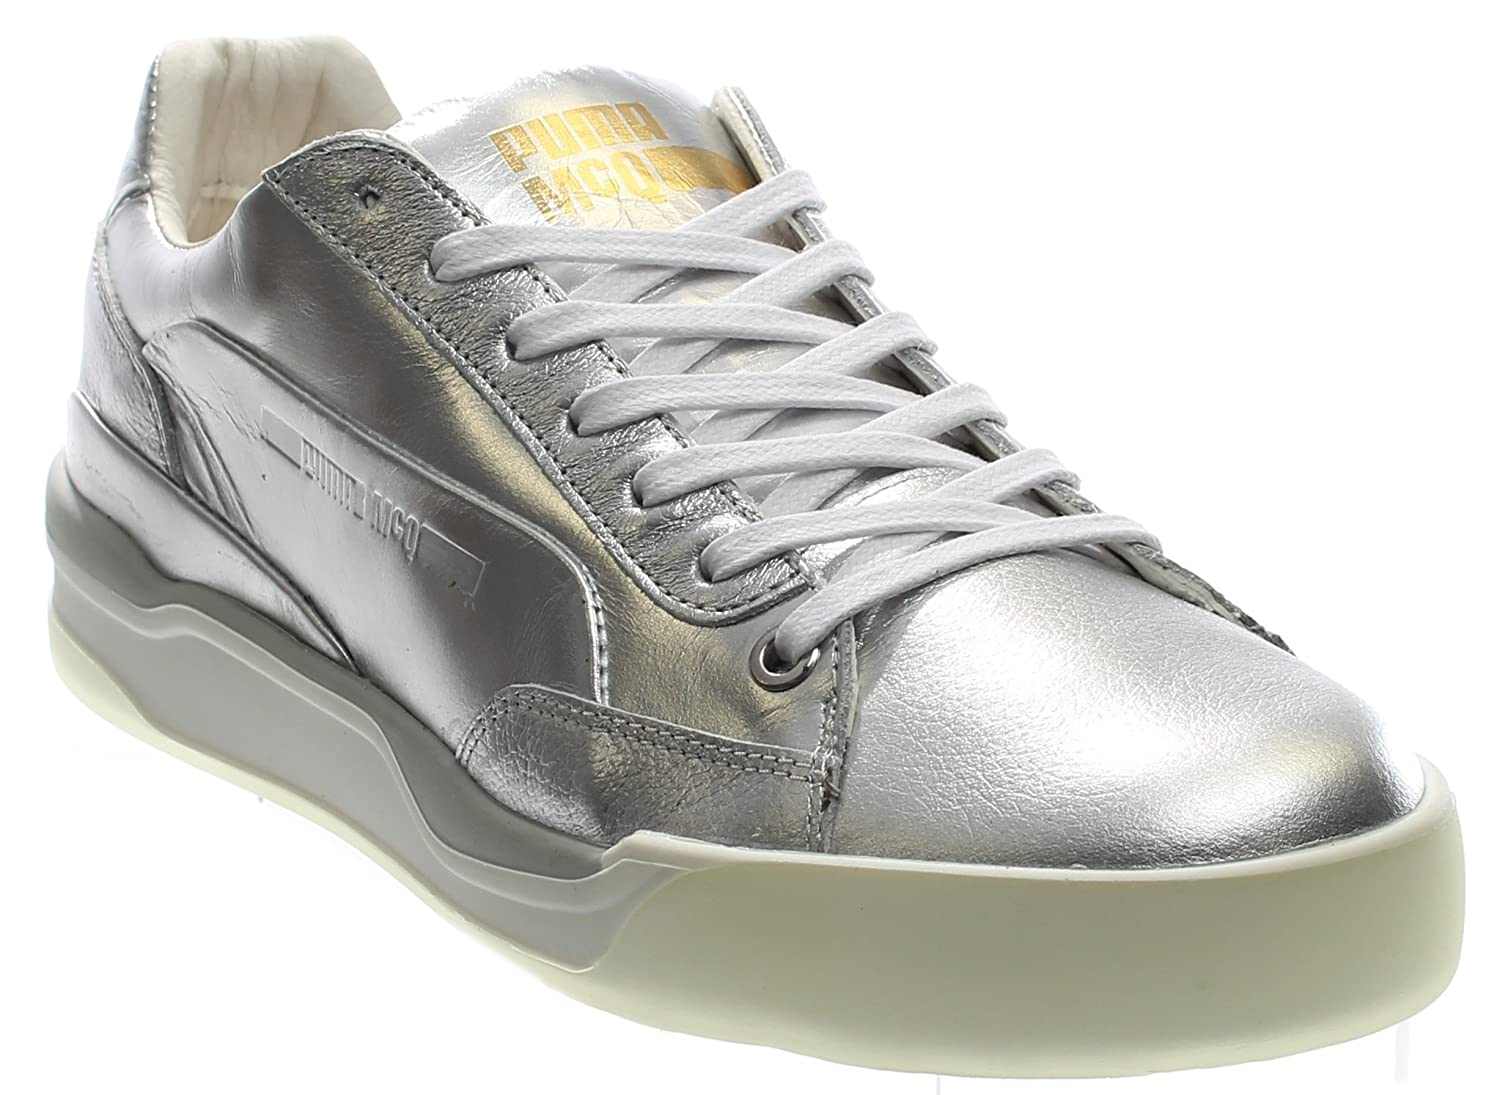 PUMA MCQ Move Lo Womens Silver Patent Leather Lace up Sneakers Shoes B01N2UQWZ8 11.5 D(M) US|Silver